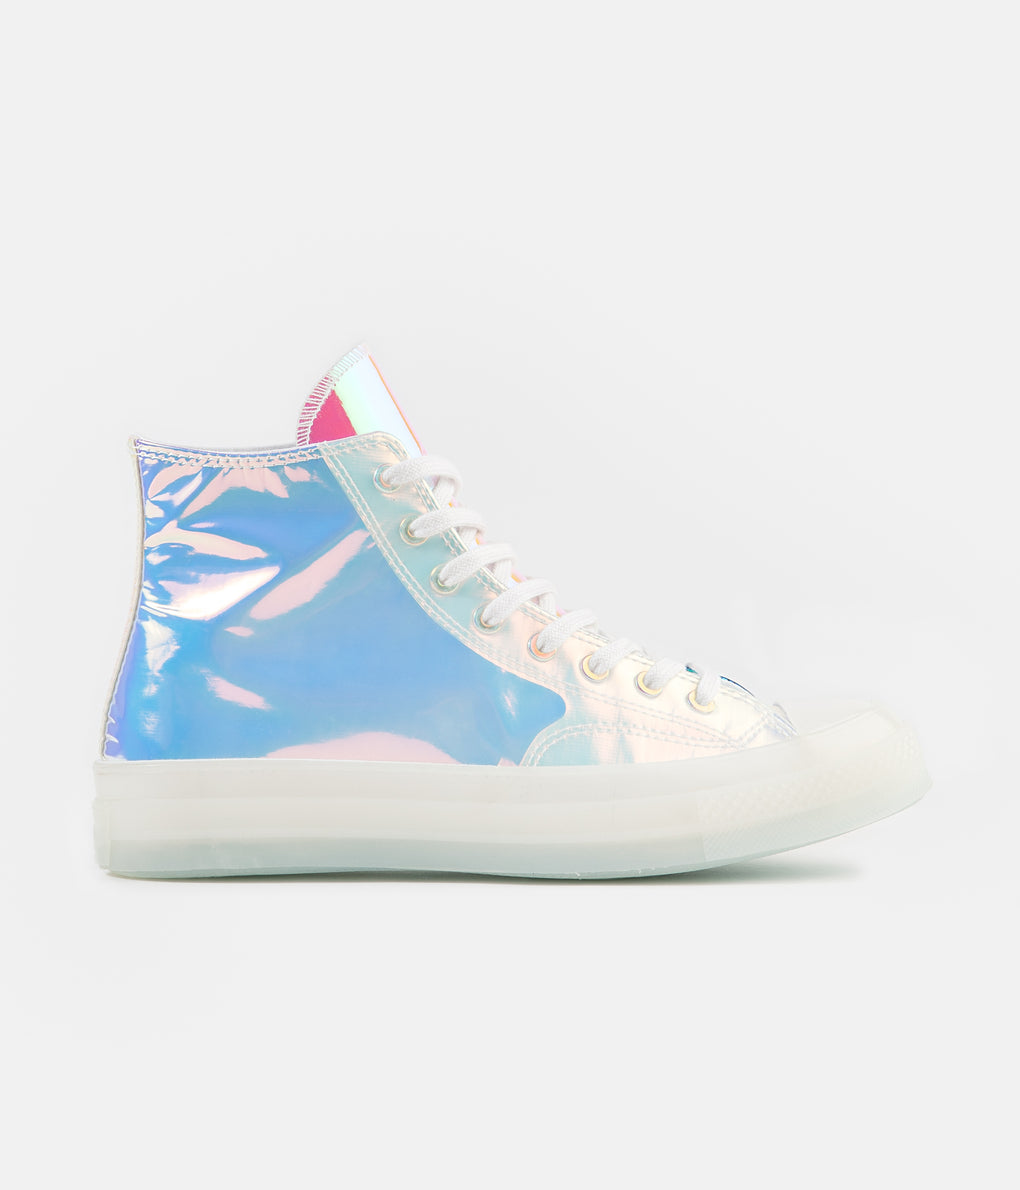 Converse CTAS 70's Hi Shoes - White / Iridescent / White